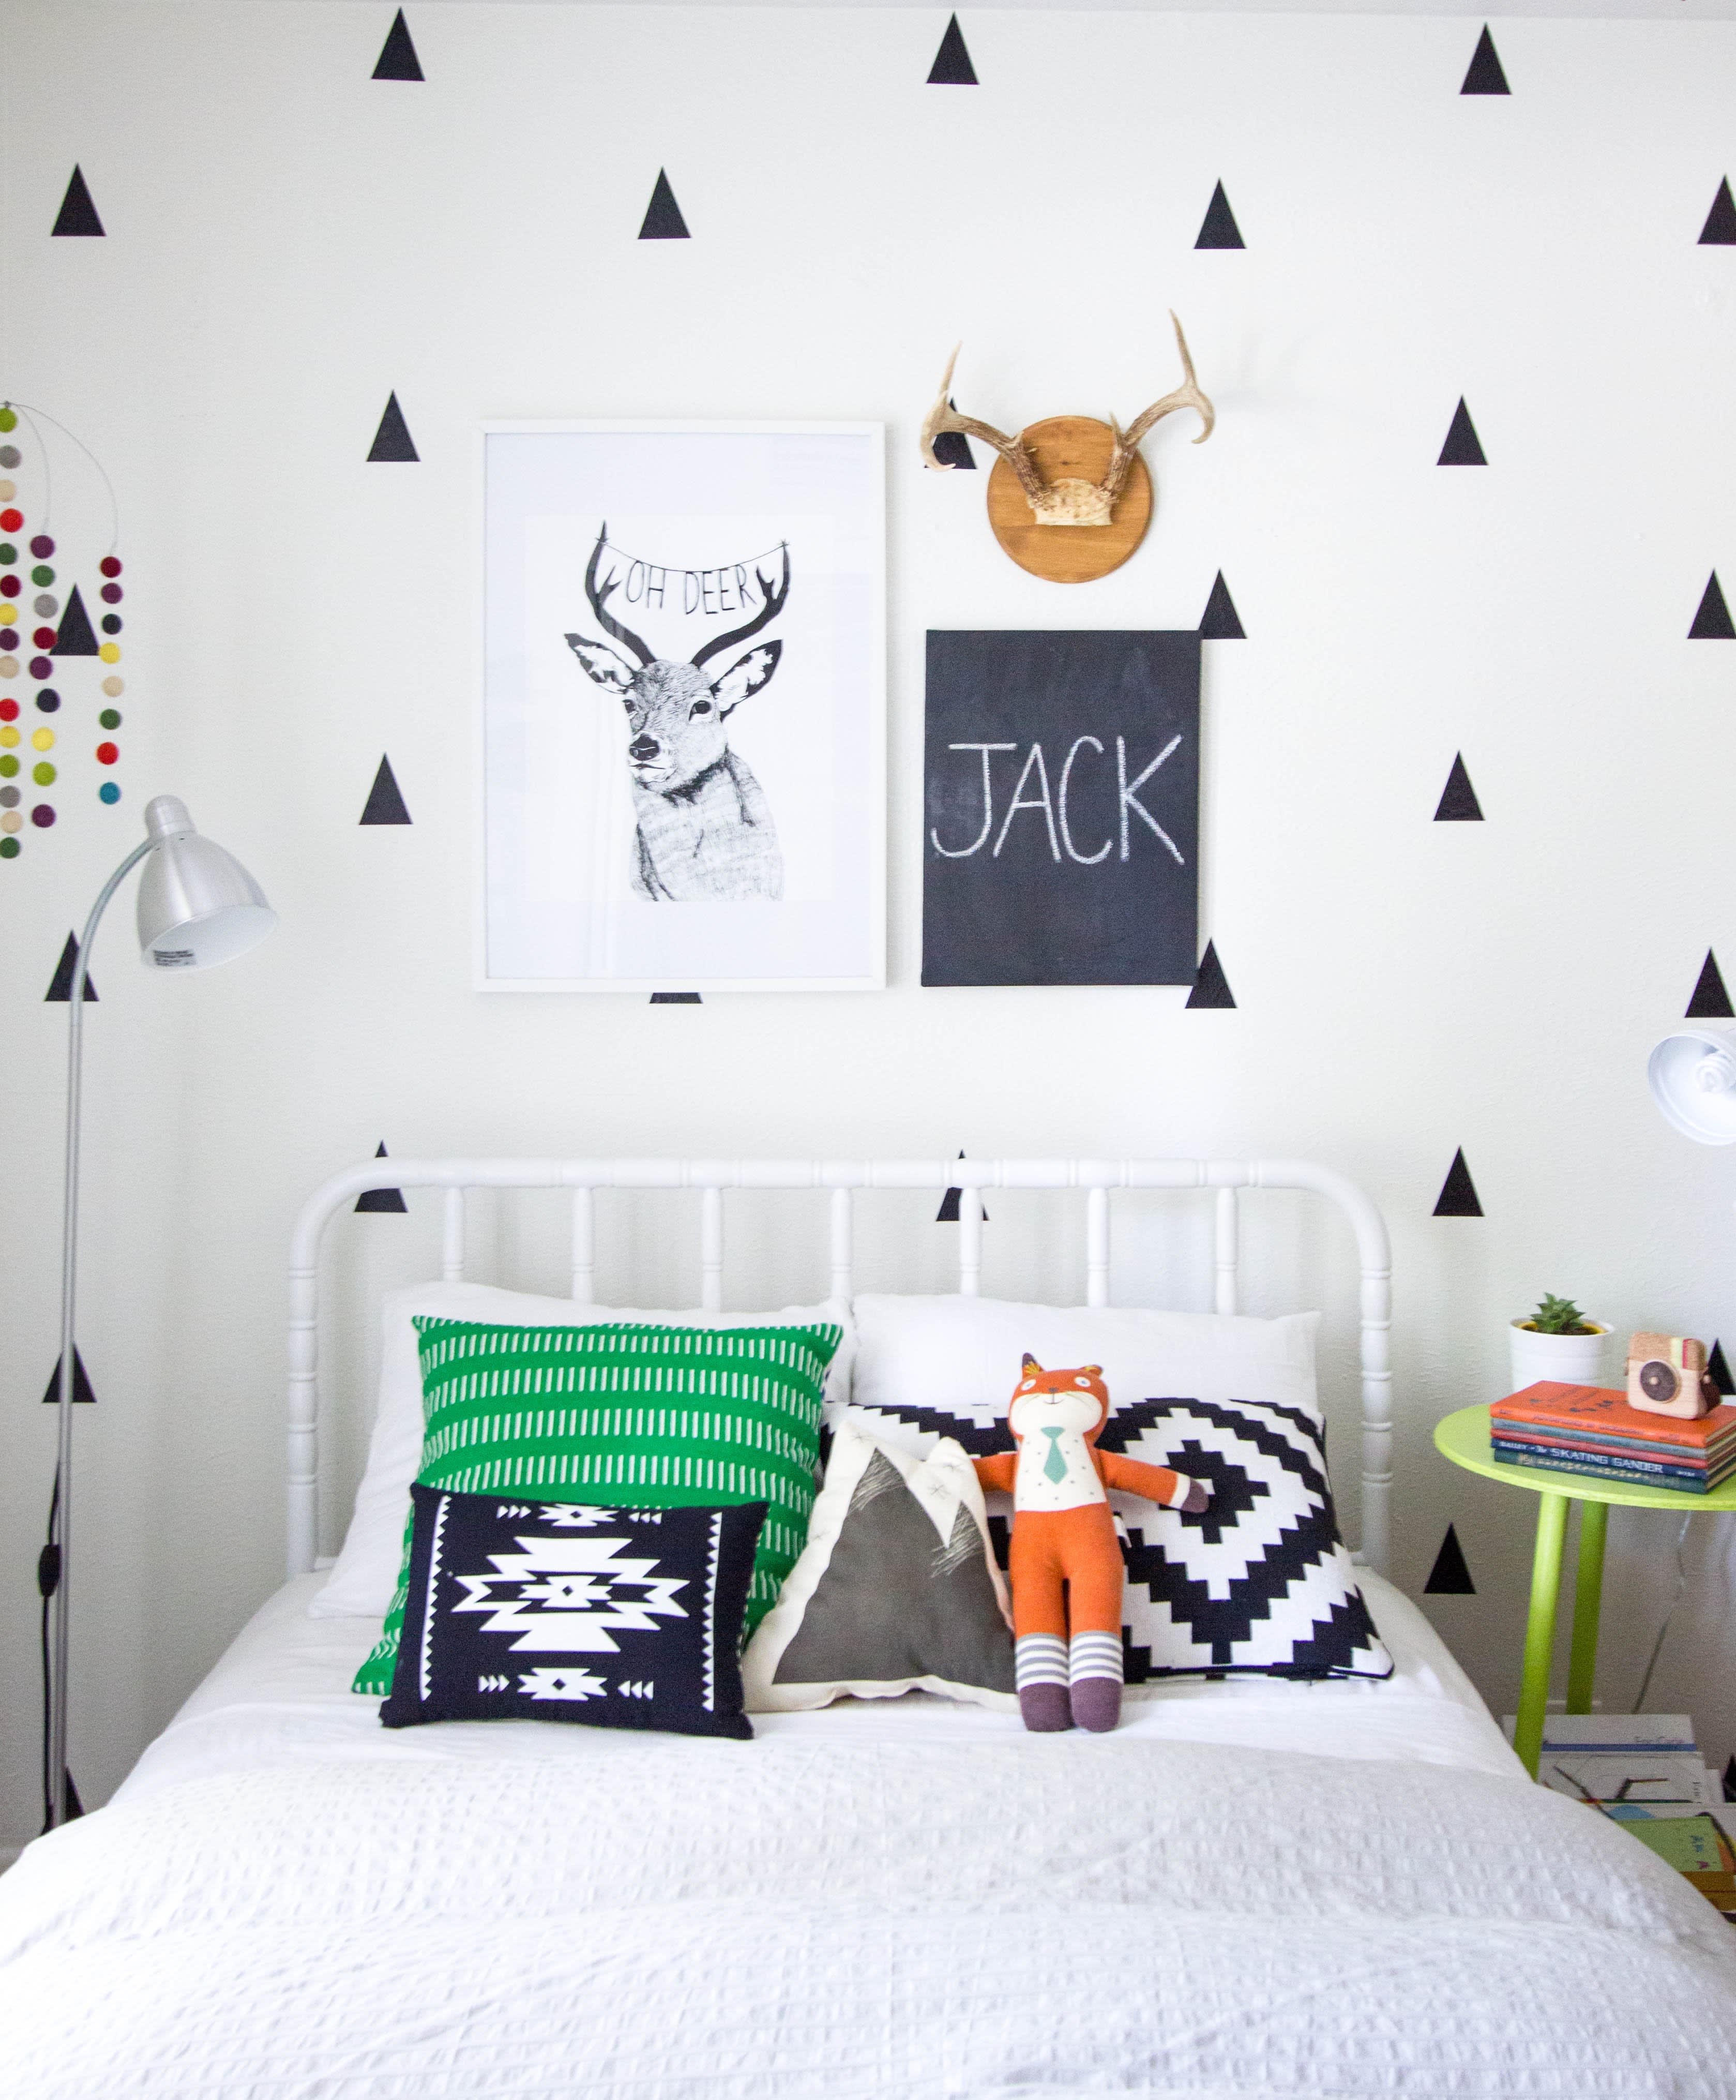 Trendy Kids Decor on a Budget: Black-on-White Wall Decals ...